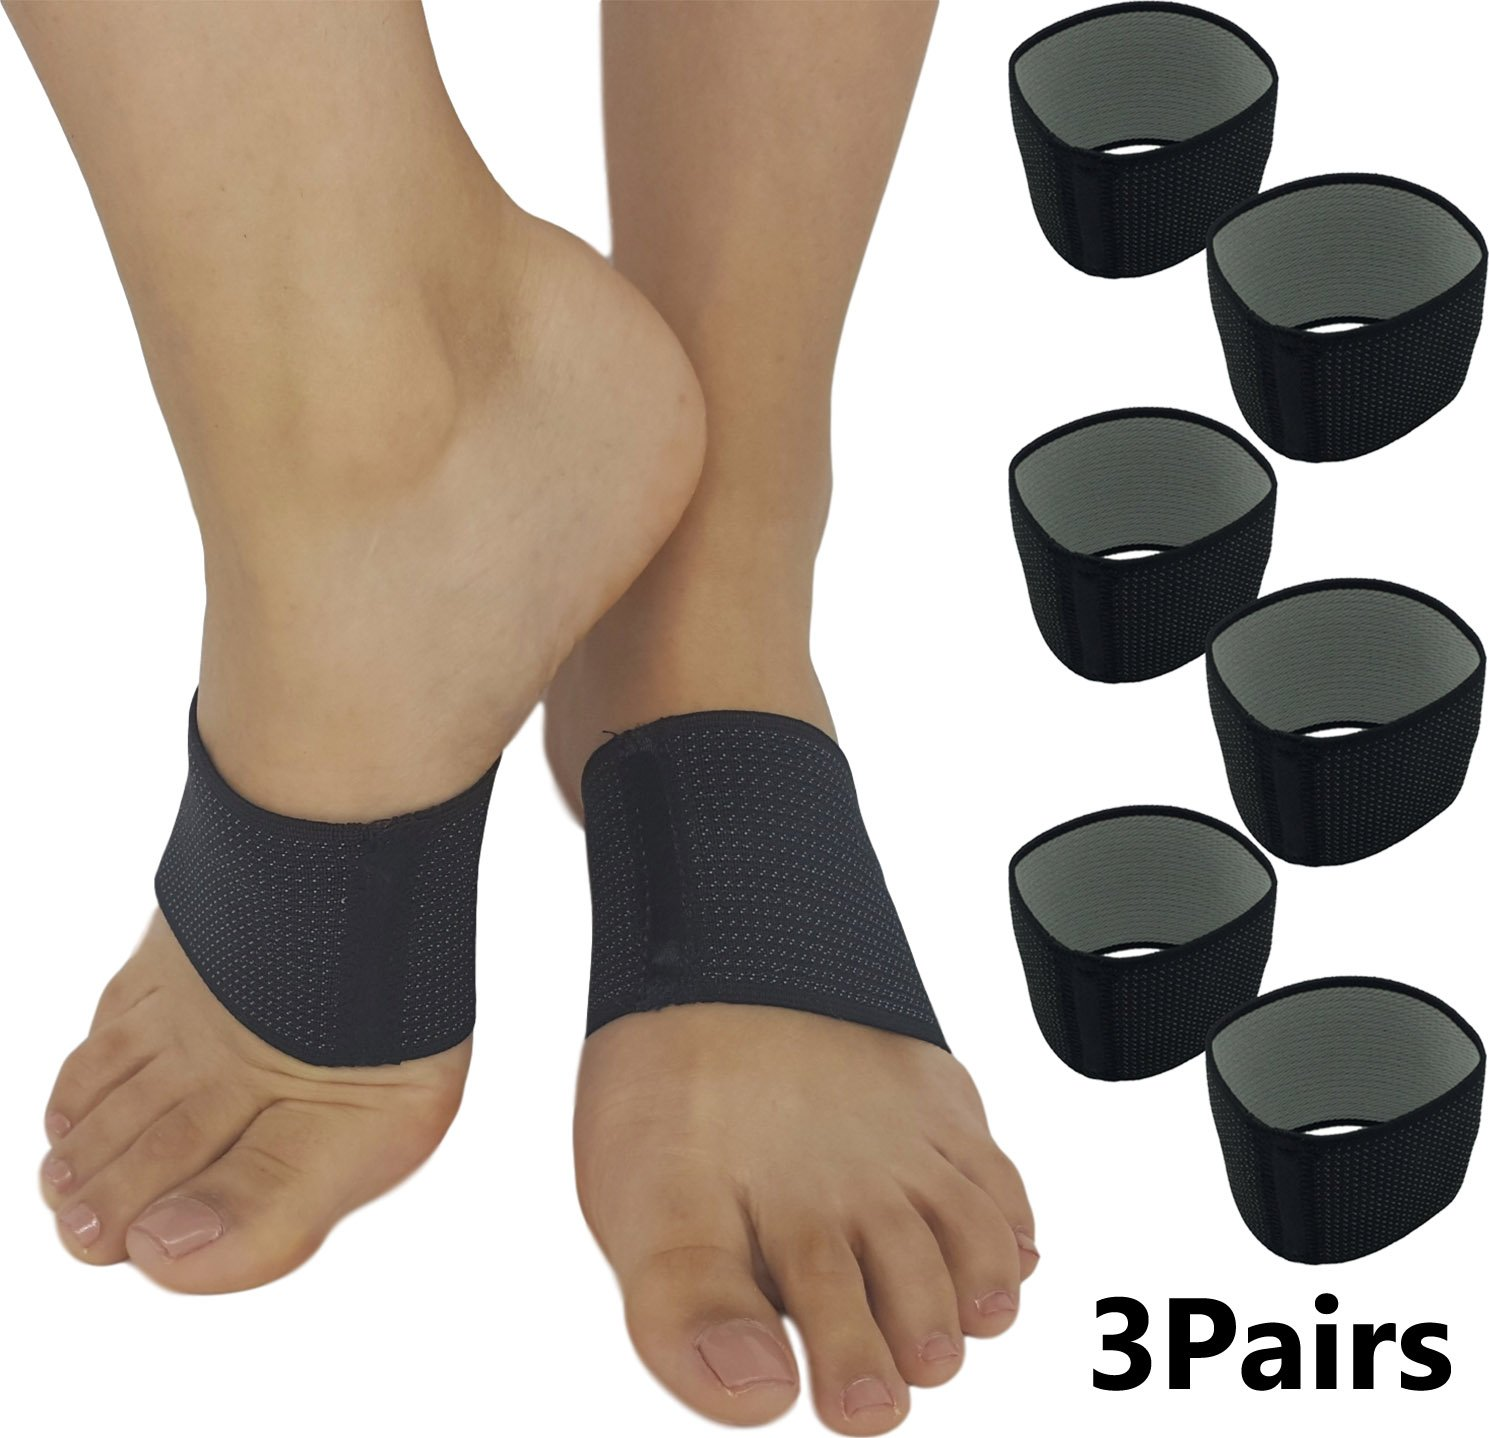 Plantar Fasciitis Brace Arch Supports - Arch Brace for Foot & Heel Pain Relief. Compression Sleeves Help Sore Heels, Bone Spurs, Flat Feet or High Arches Copper Infused Bands Plantar Fasciitis Splint by ARMSTRONG AMERIKA